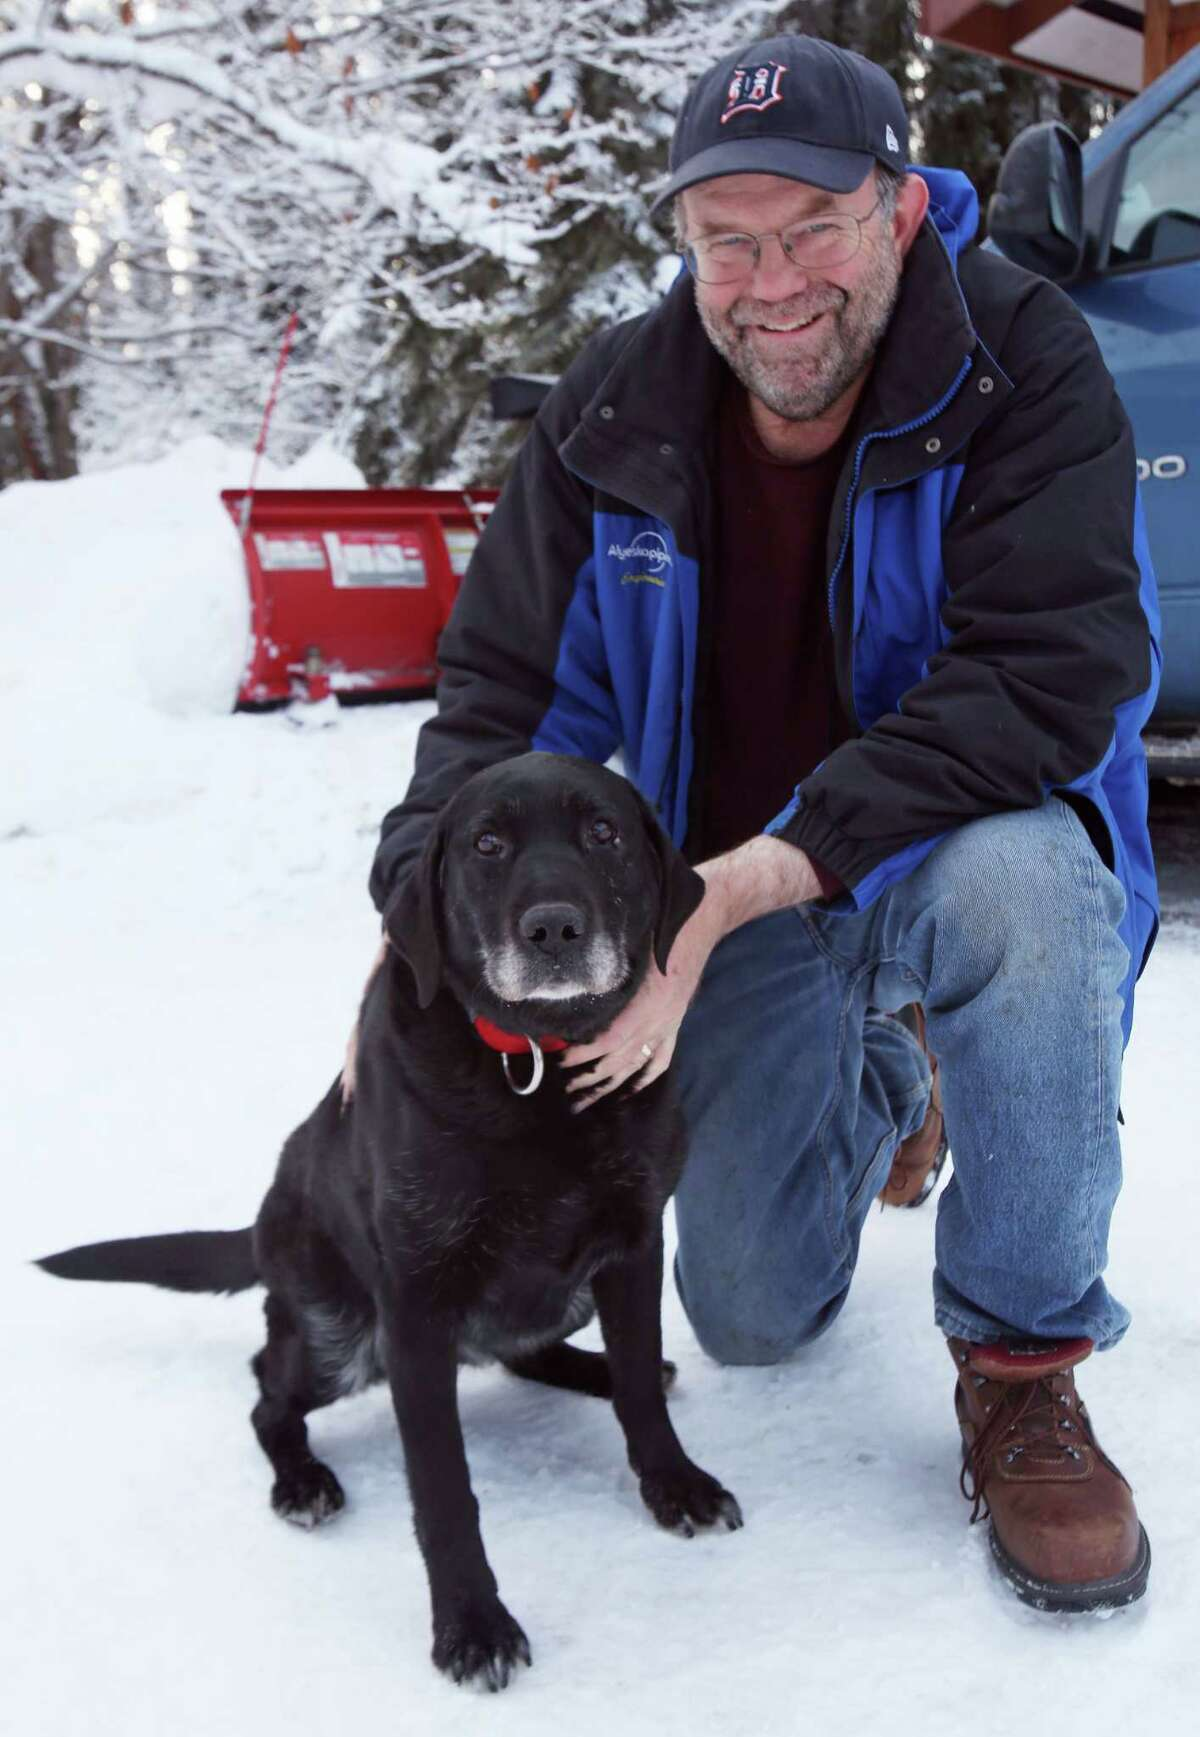 Ed Davis poses with his dog Madera at his home Thursday, Feb. 26, 2015, in Ester, Alaska. Madera, who is 11-years old and blind, survived two weeks in sub-zero temperatures after wandering away from home earlier this month. (AP Photo/The Fairbanks Daily News-Miner, Eric Engman)